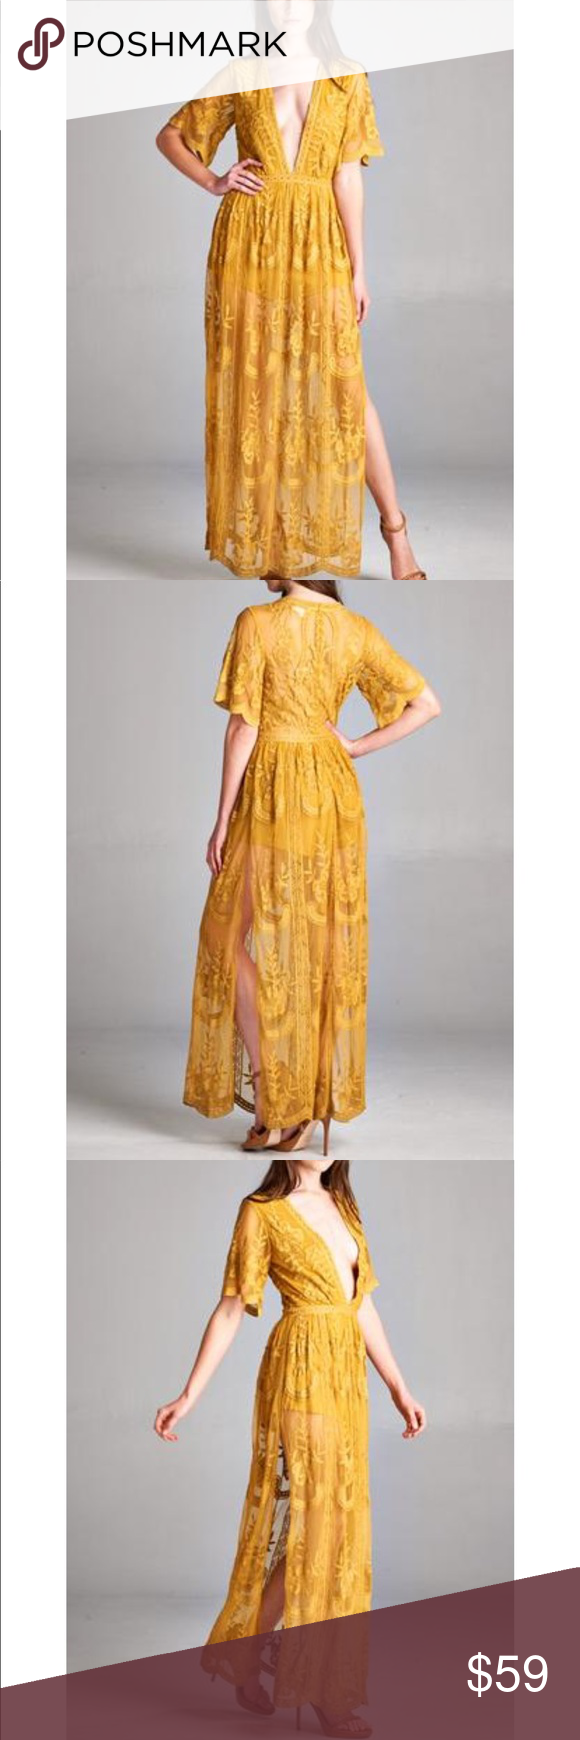 Long gold yellow lace vneck maxi dress nwt boutique pinterest